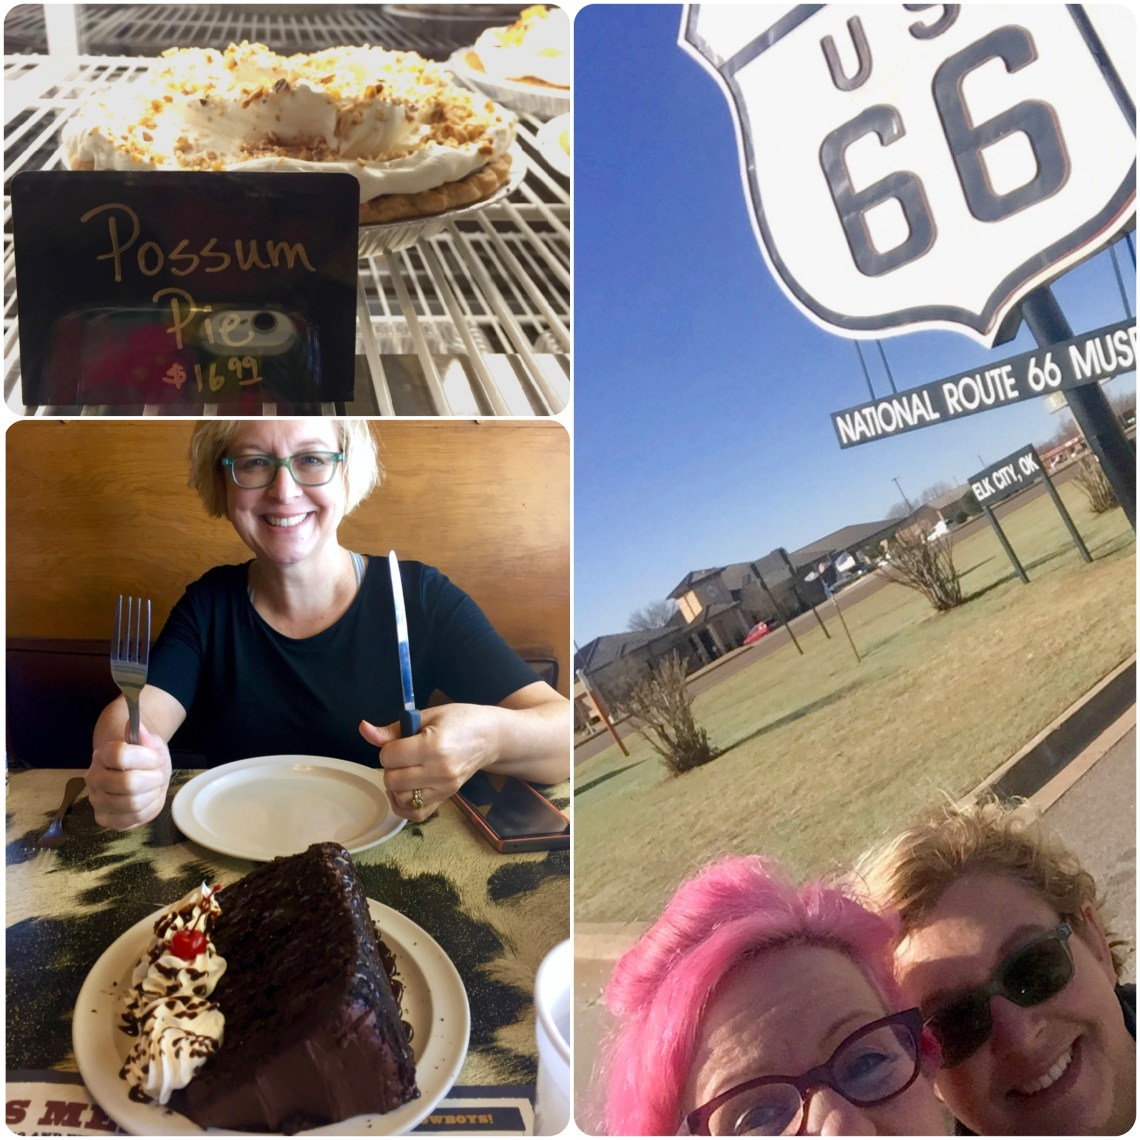 On the road to LA: desserts and museum stop